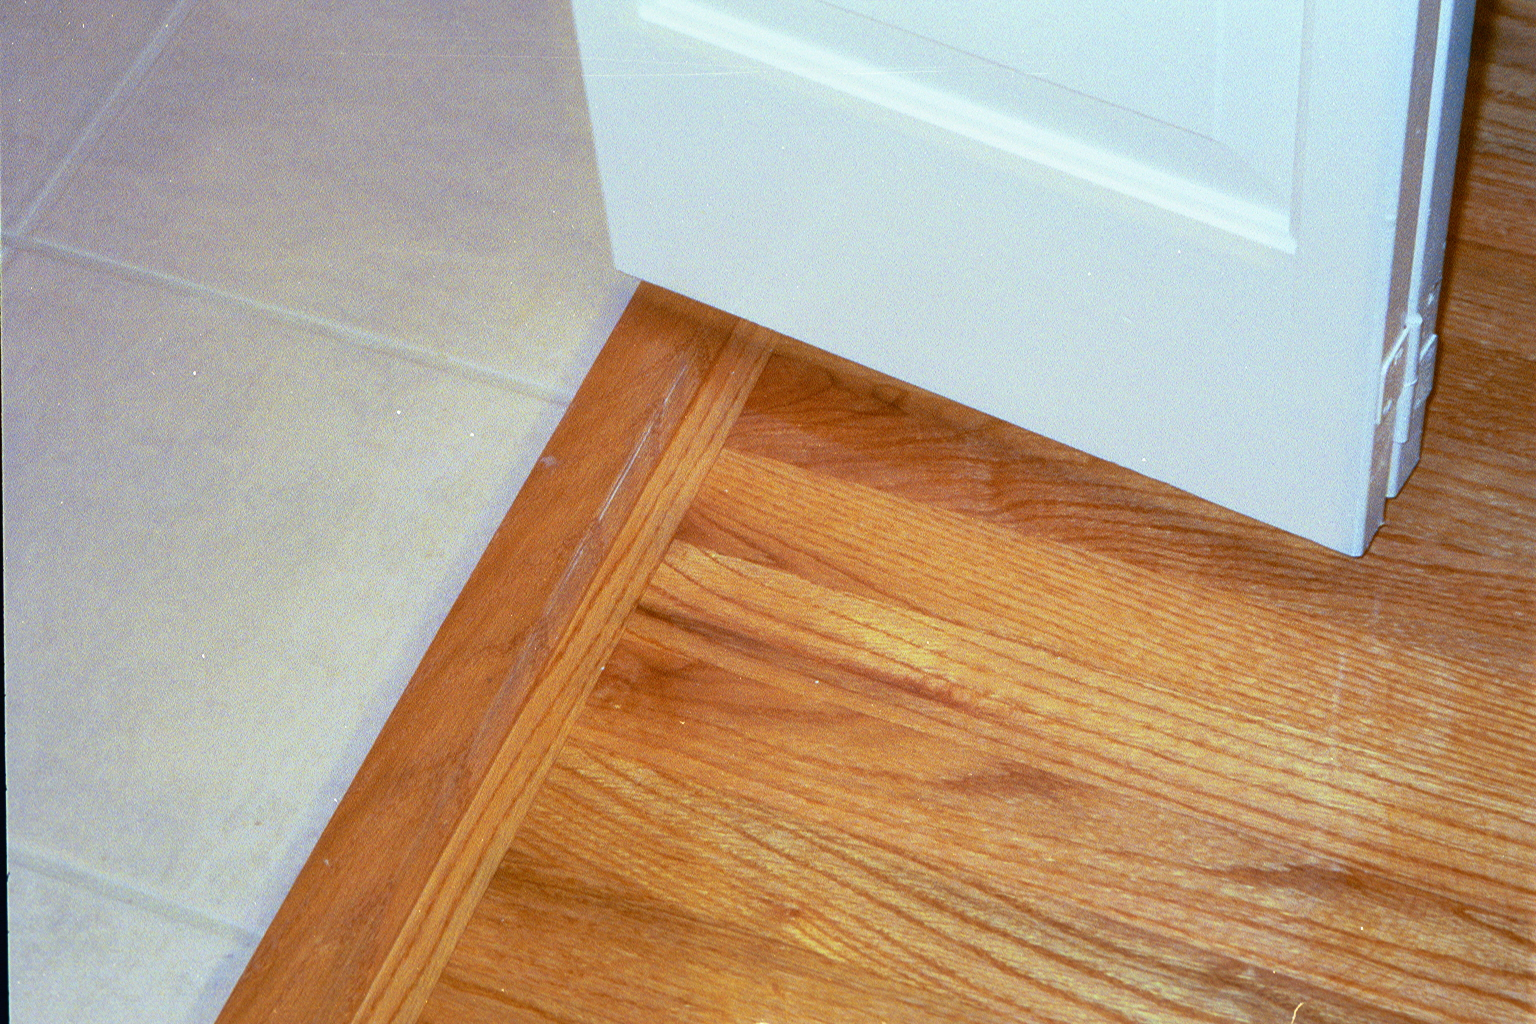 Tile to wood floor threshold